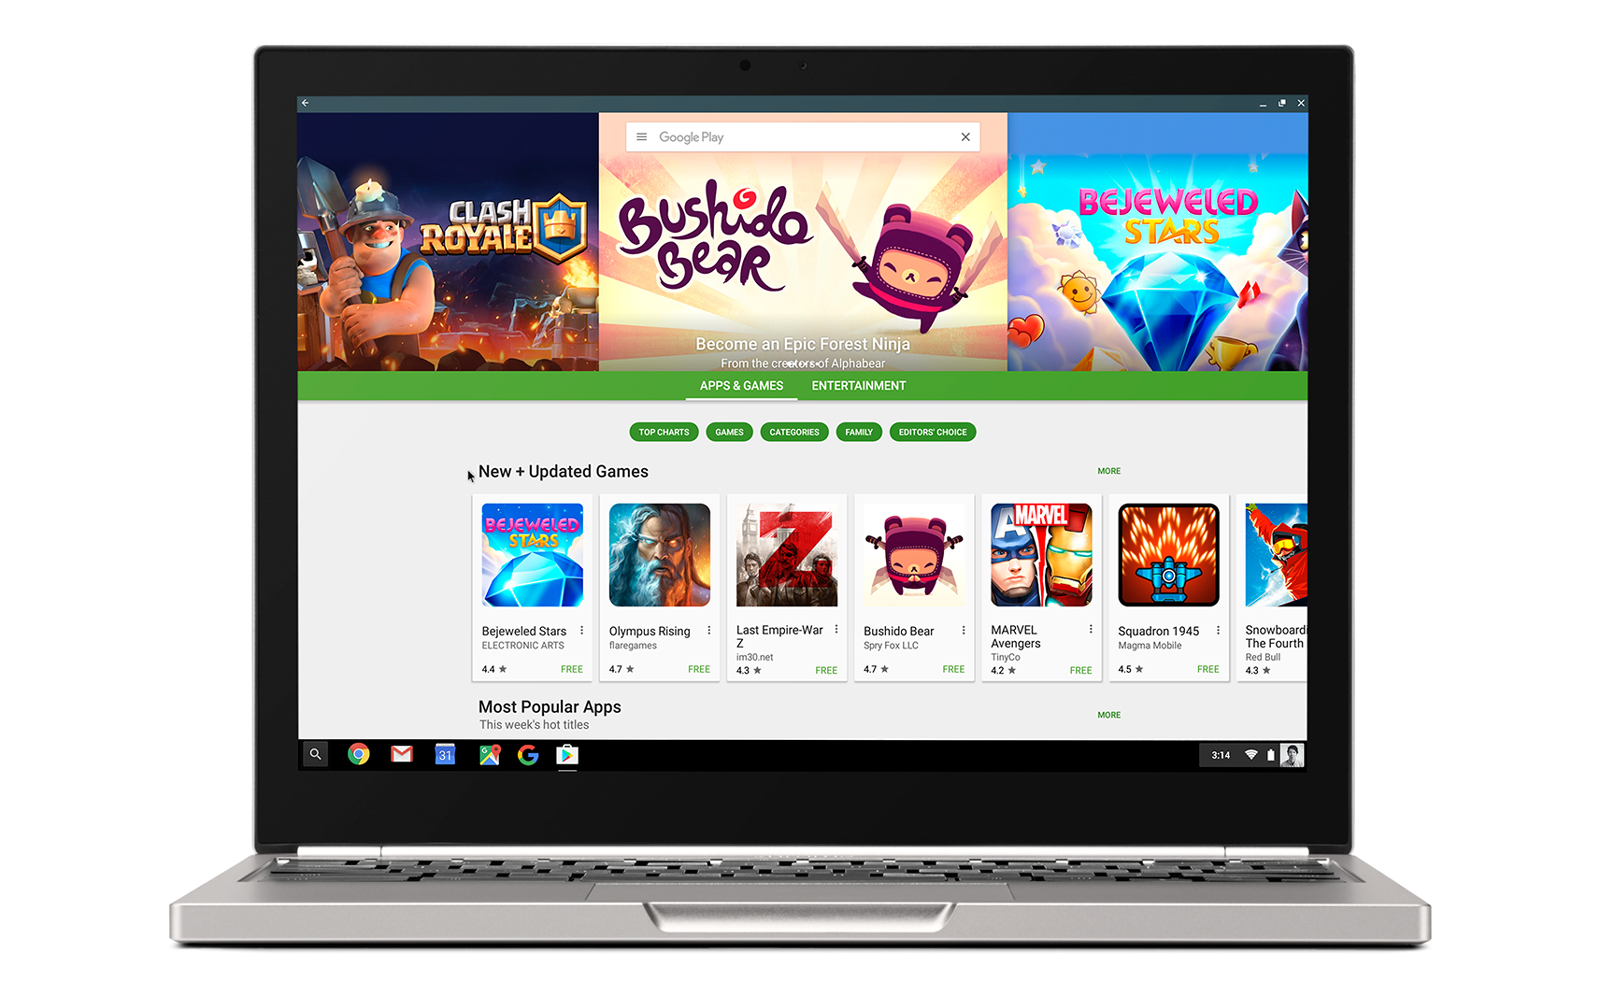 Oficial: Play Store y sus apps Android llegan a Chrome OS este año